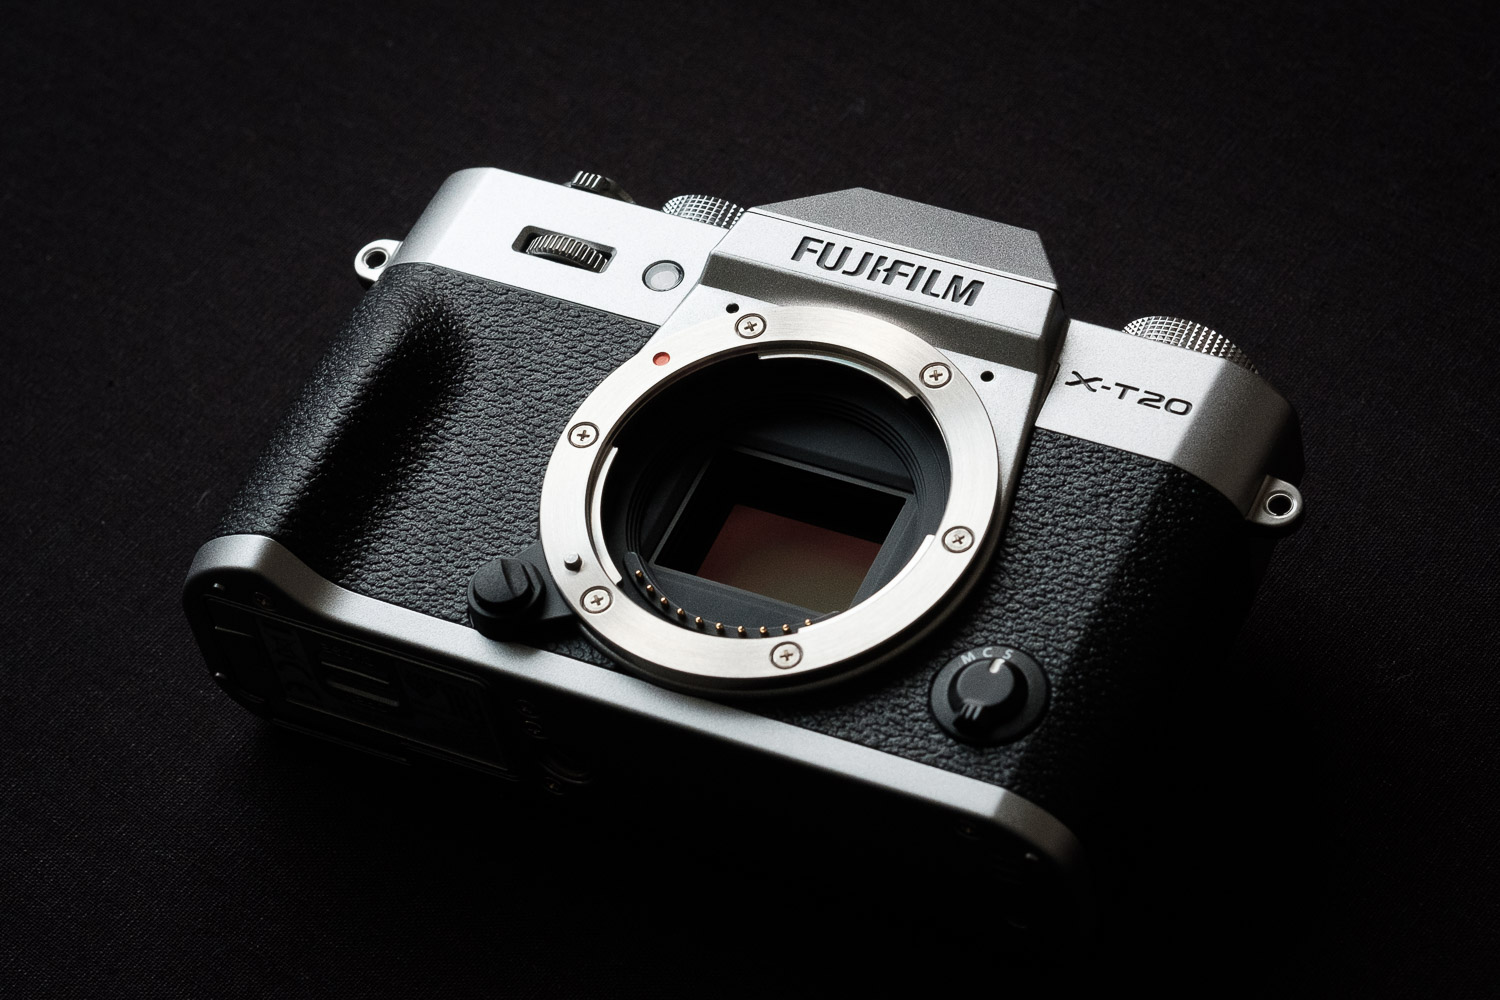 Fujifilm XT20 Review